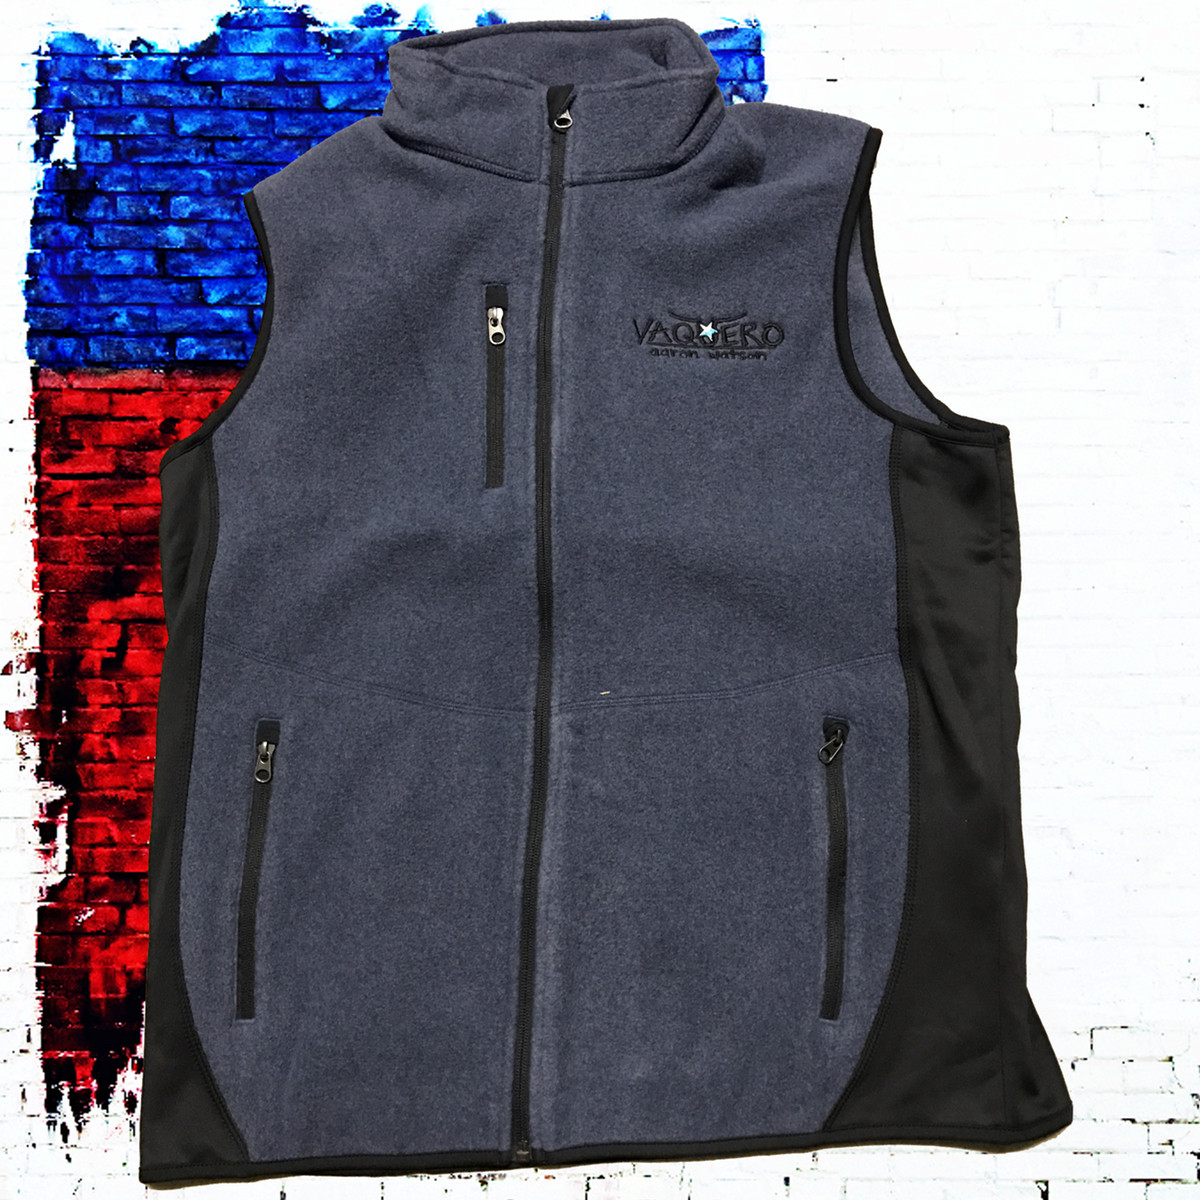 Vaquero Fleece Vest